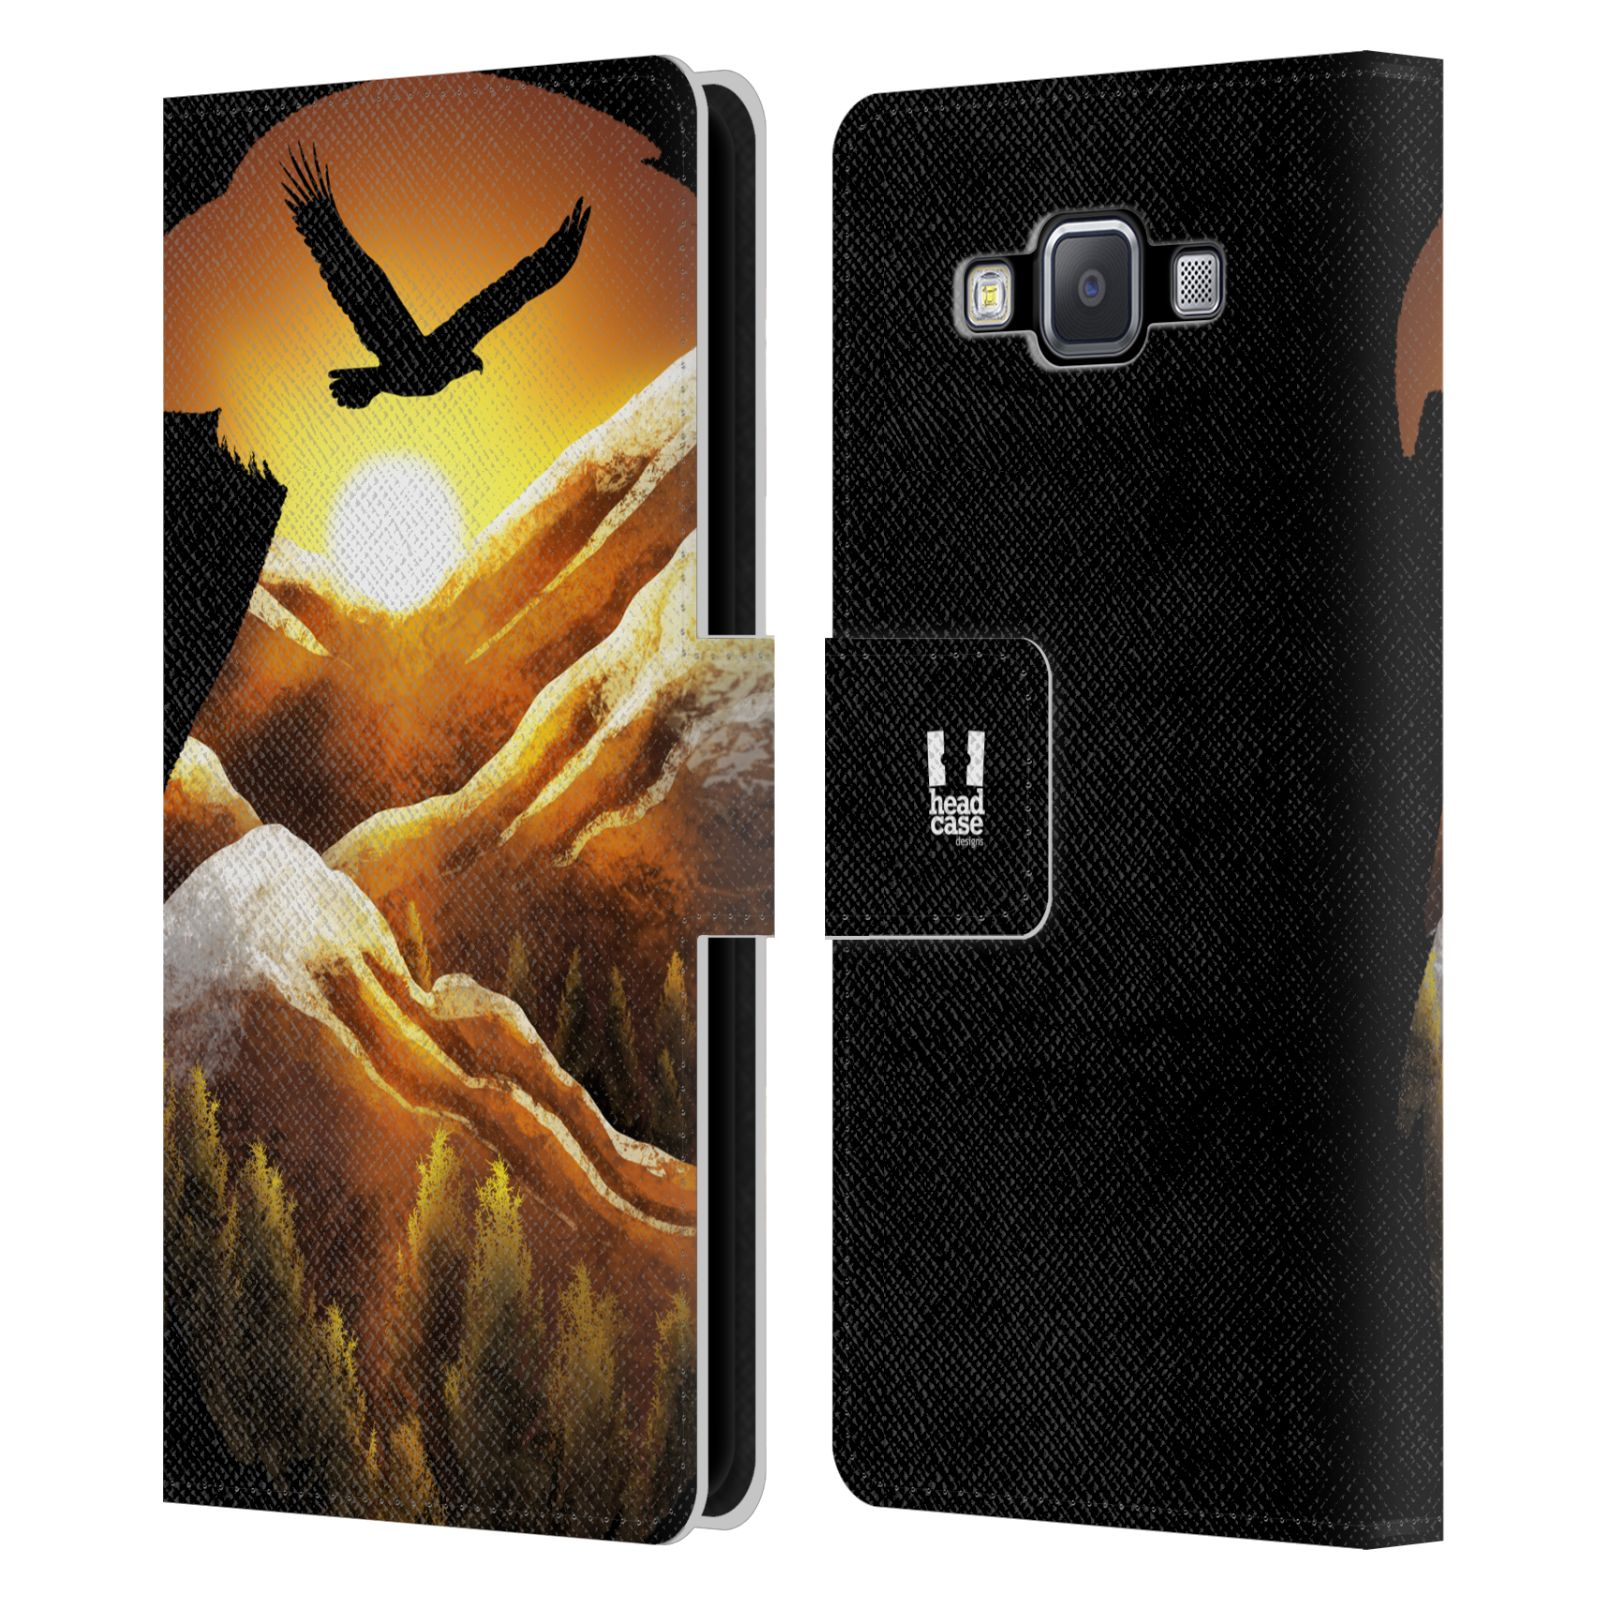 HEAD-CASE-DESIGNS-ANIMAL-DOUBLE-EXPOSURE-LEATHER-BOOK-CASE-FOR-SAMSUNG-PHONES-2